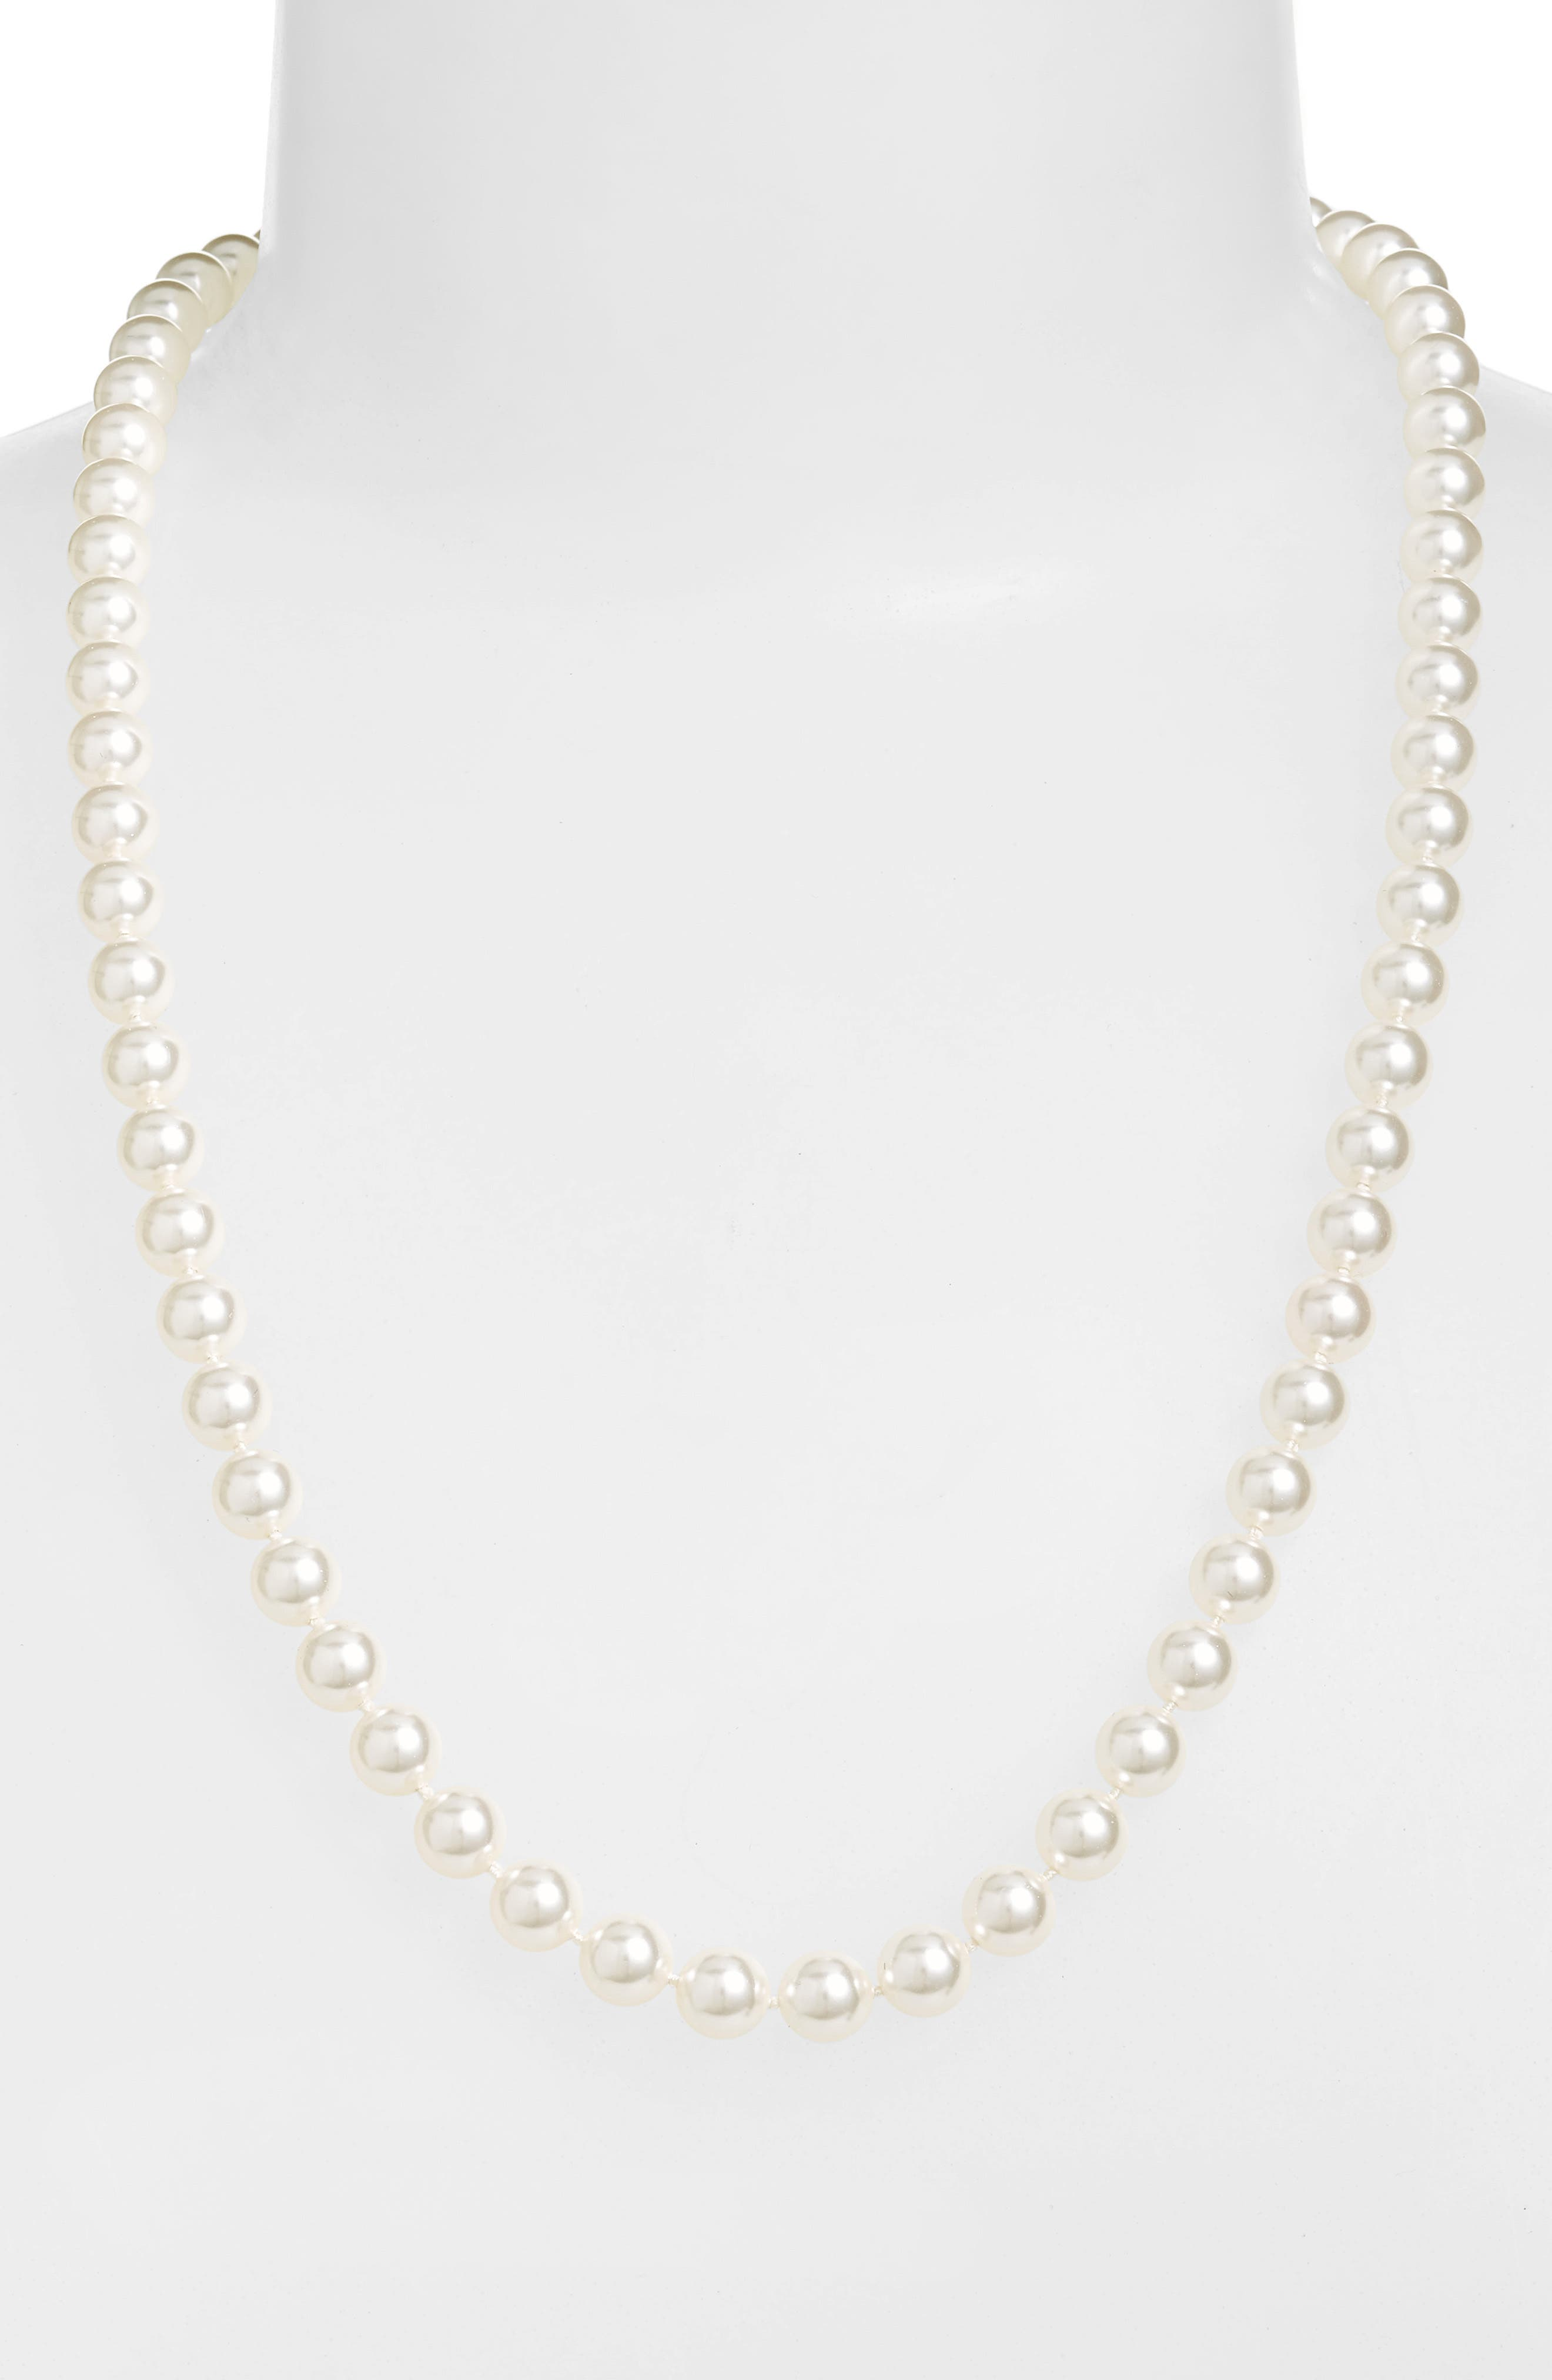 24-Inch Glass Pearl Strand Necklace,                         Main,                         color, 100